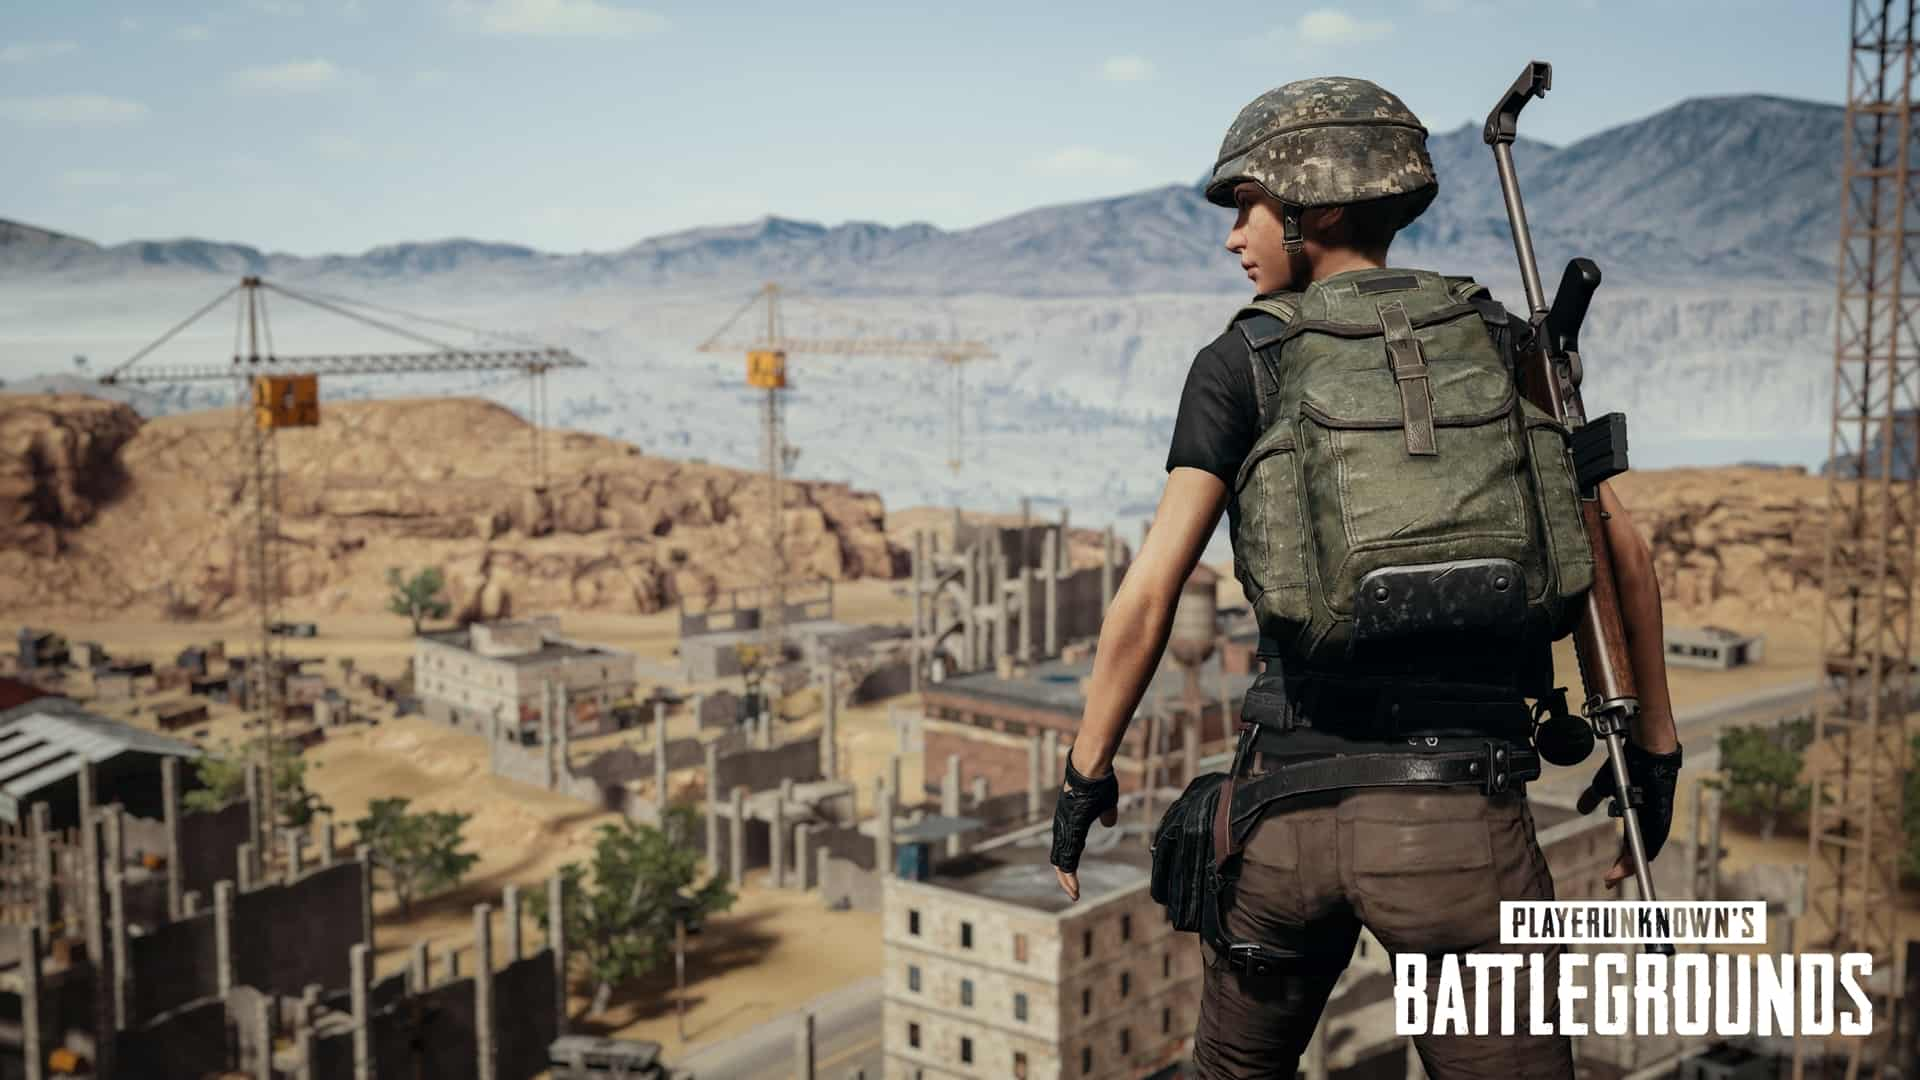 Pubg Wallpaper Ps4: PUBG Mobile Update 0.4.0 Patch Notes Details Huge